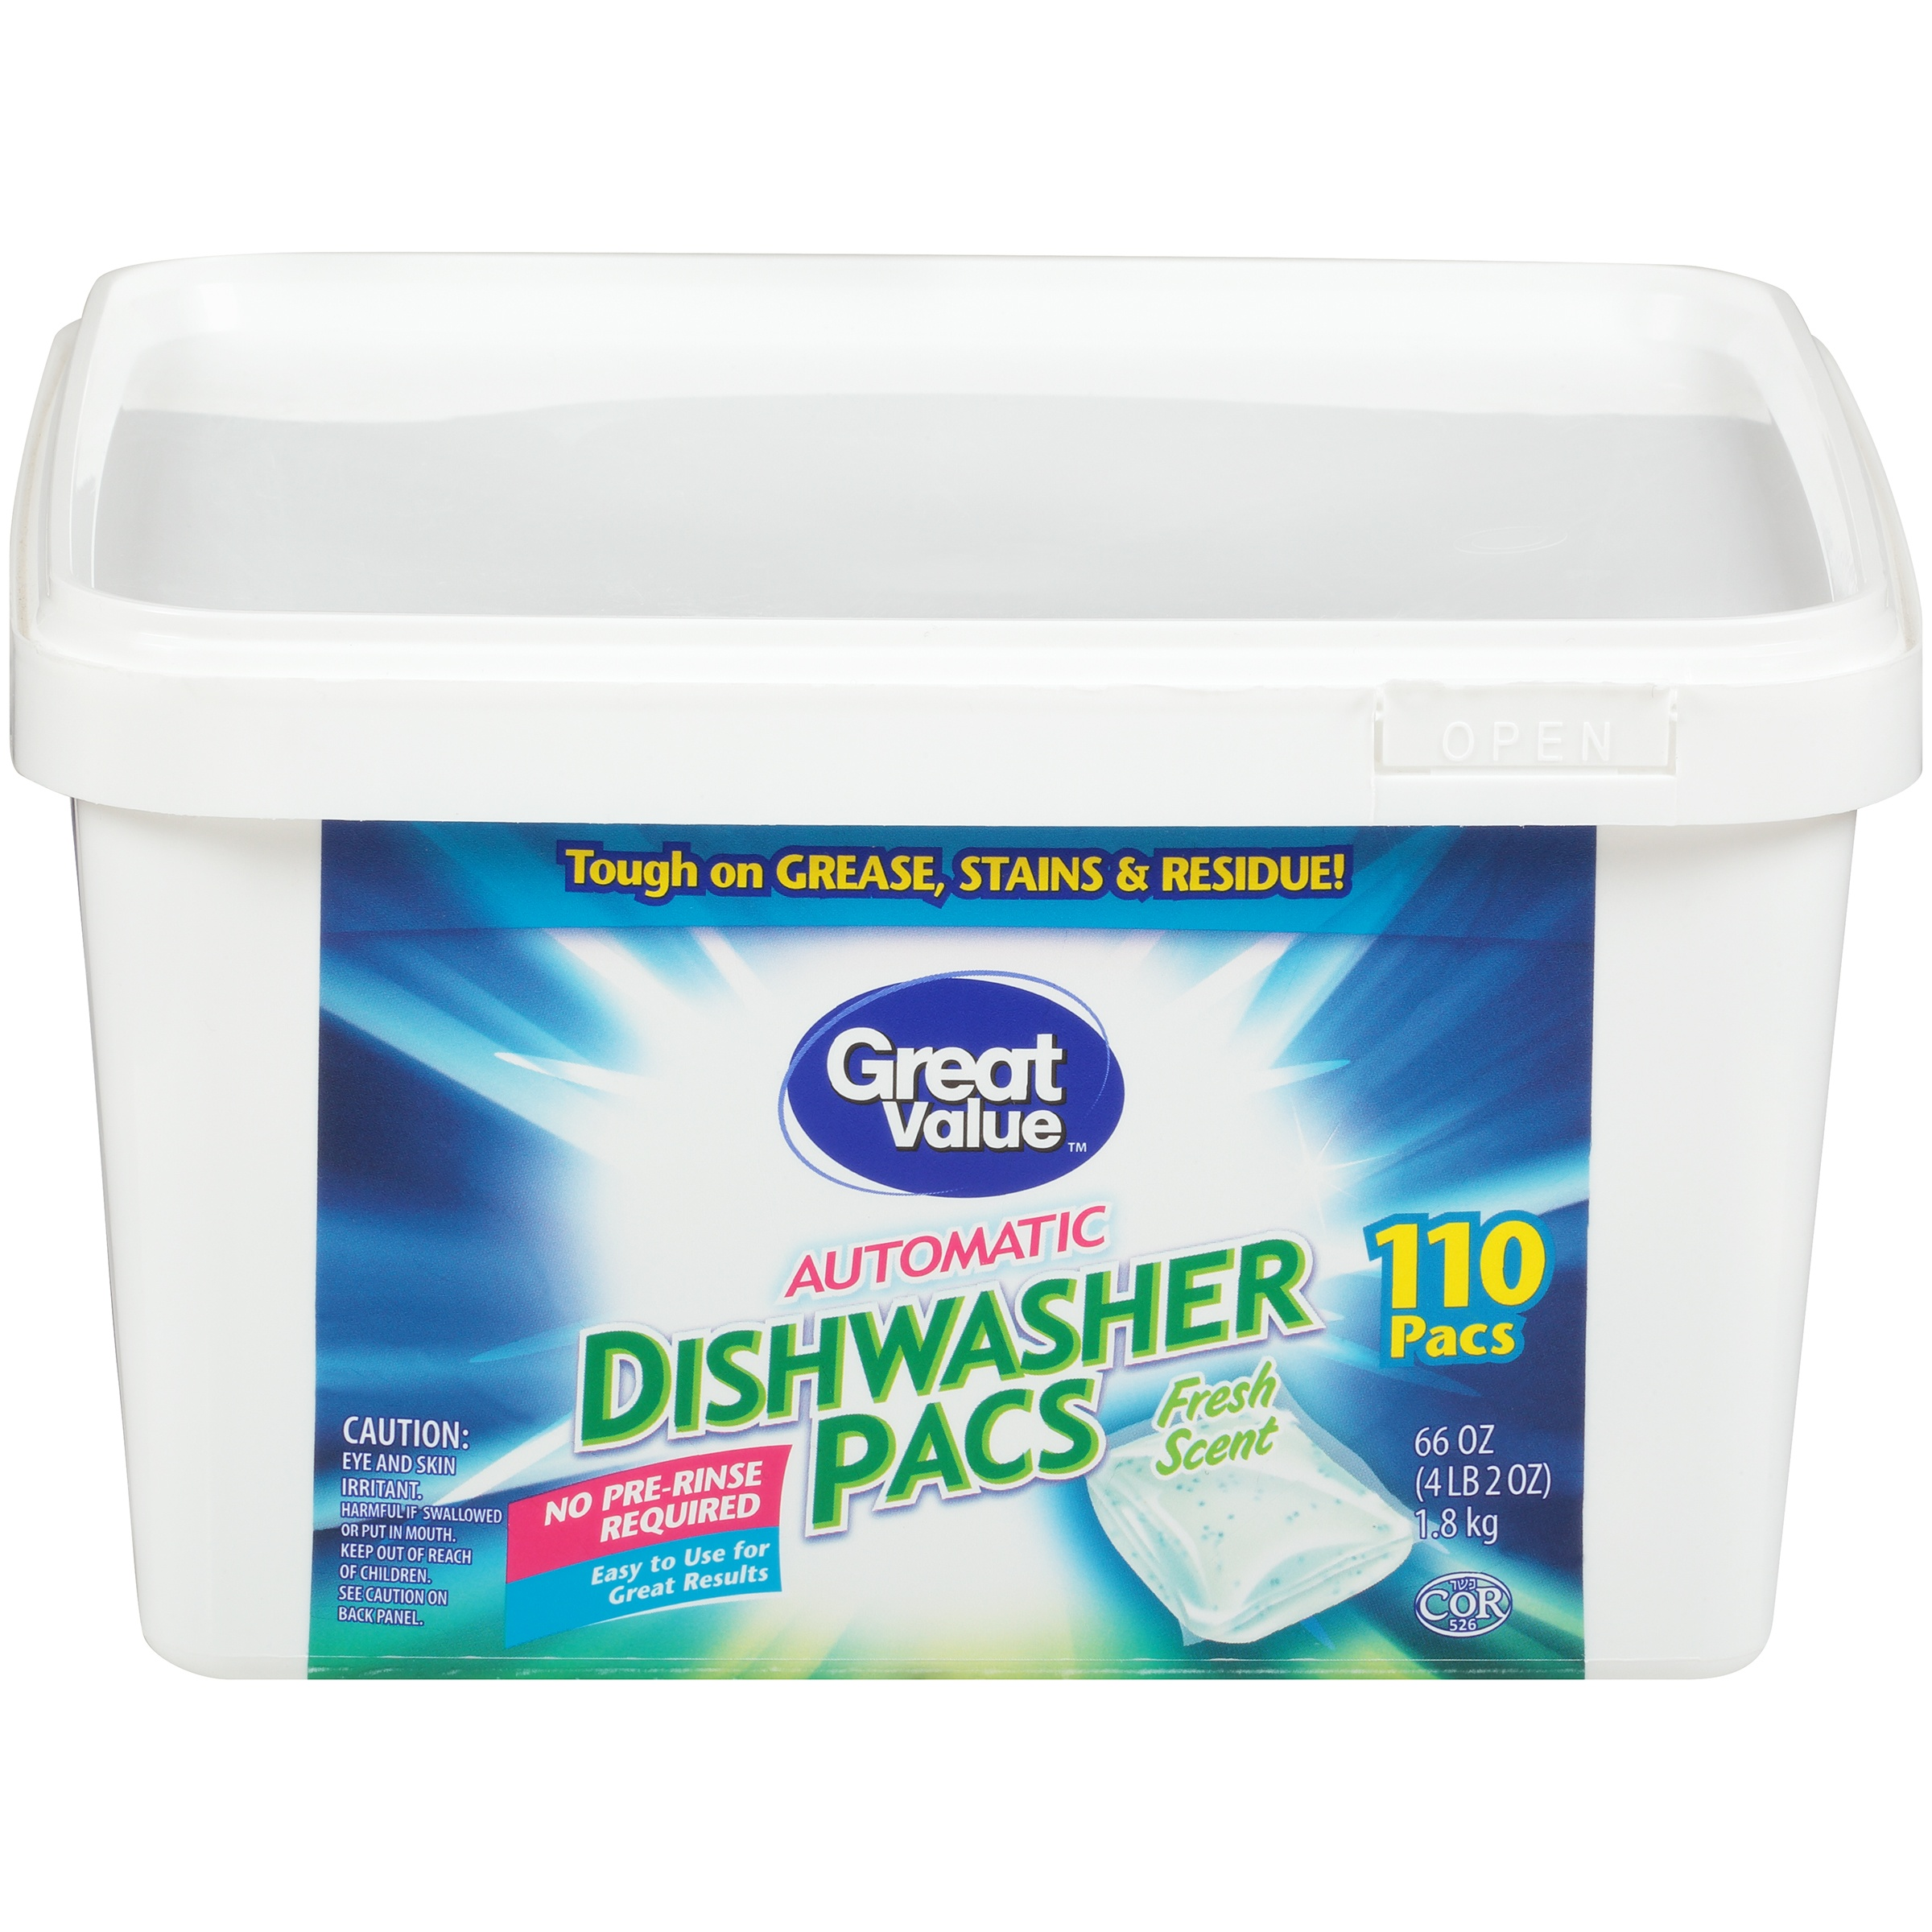 Great Value Automatic Dishwasher Pacs, Fresh Scent, 110 Count